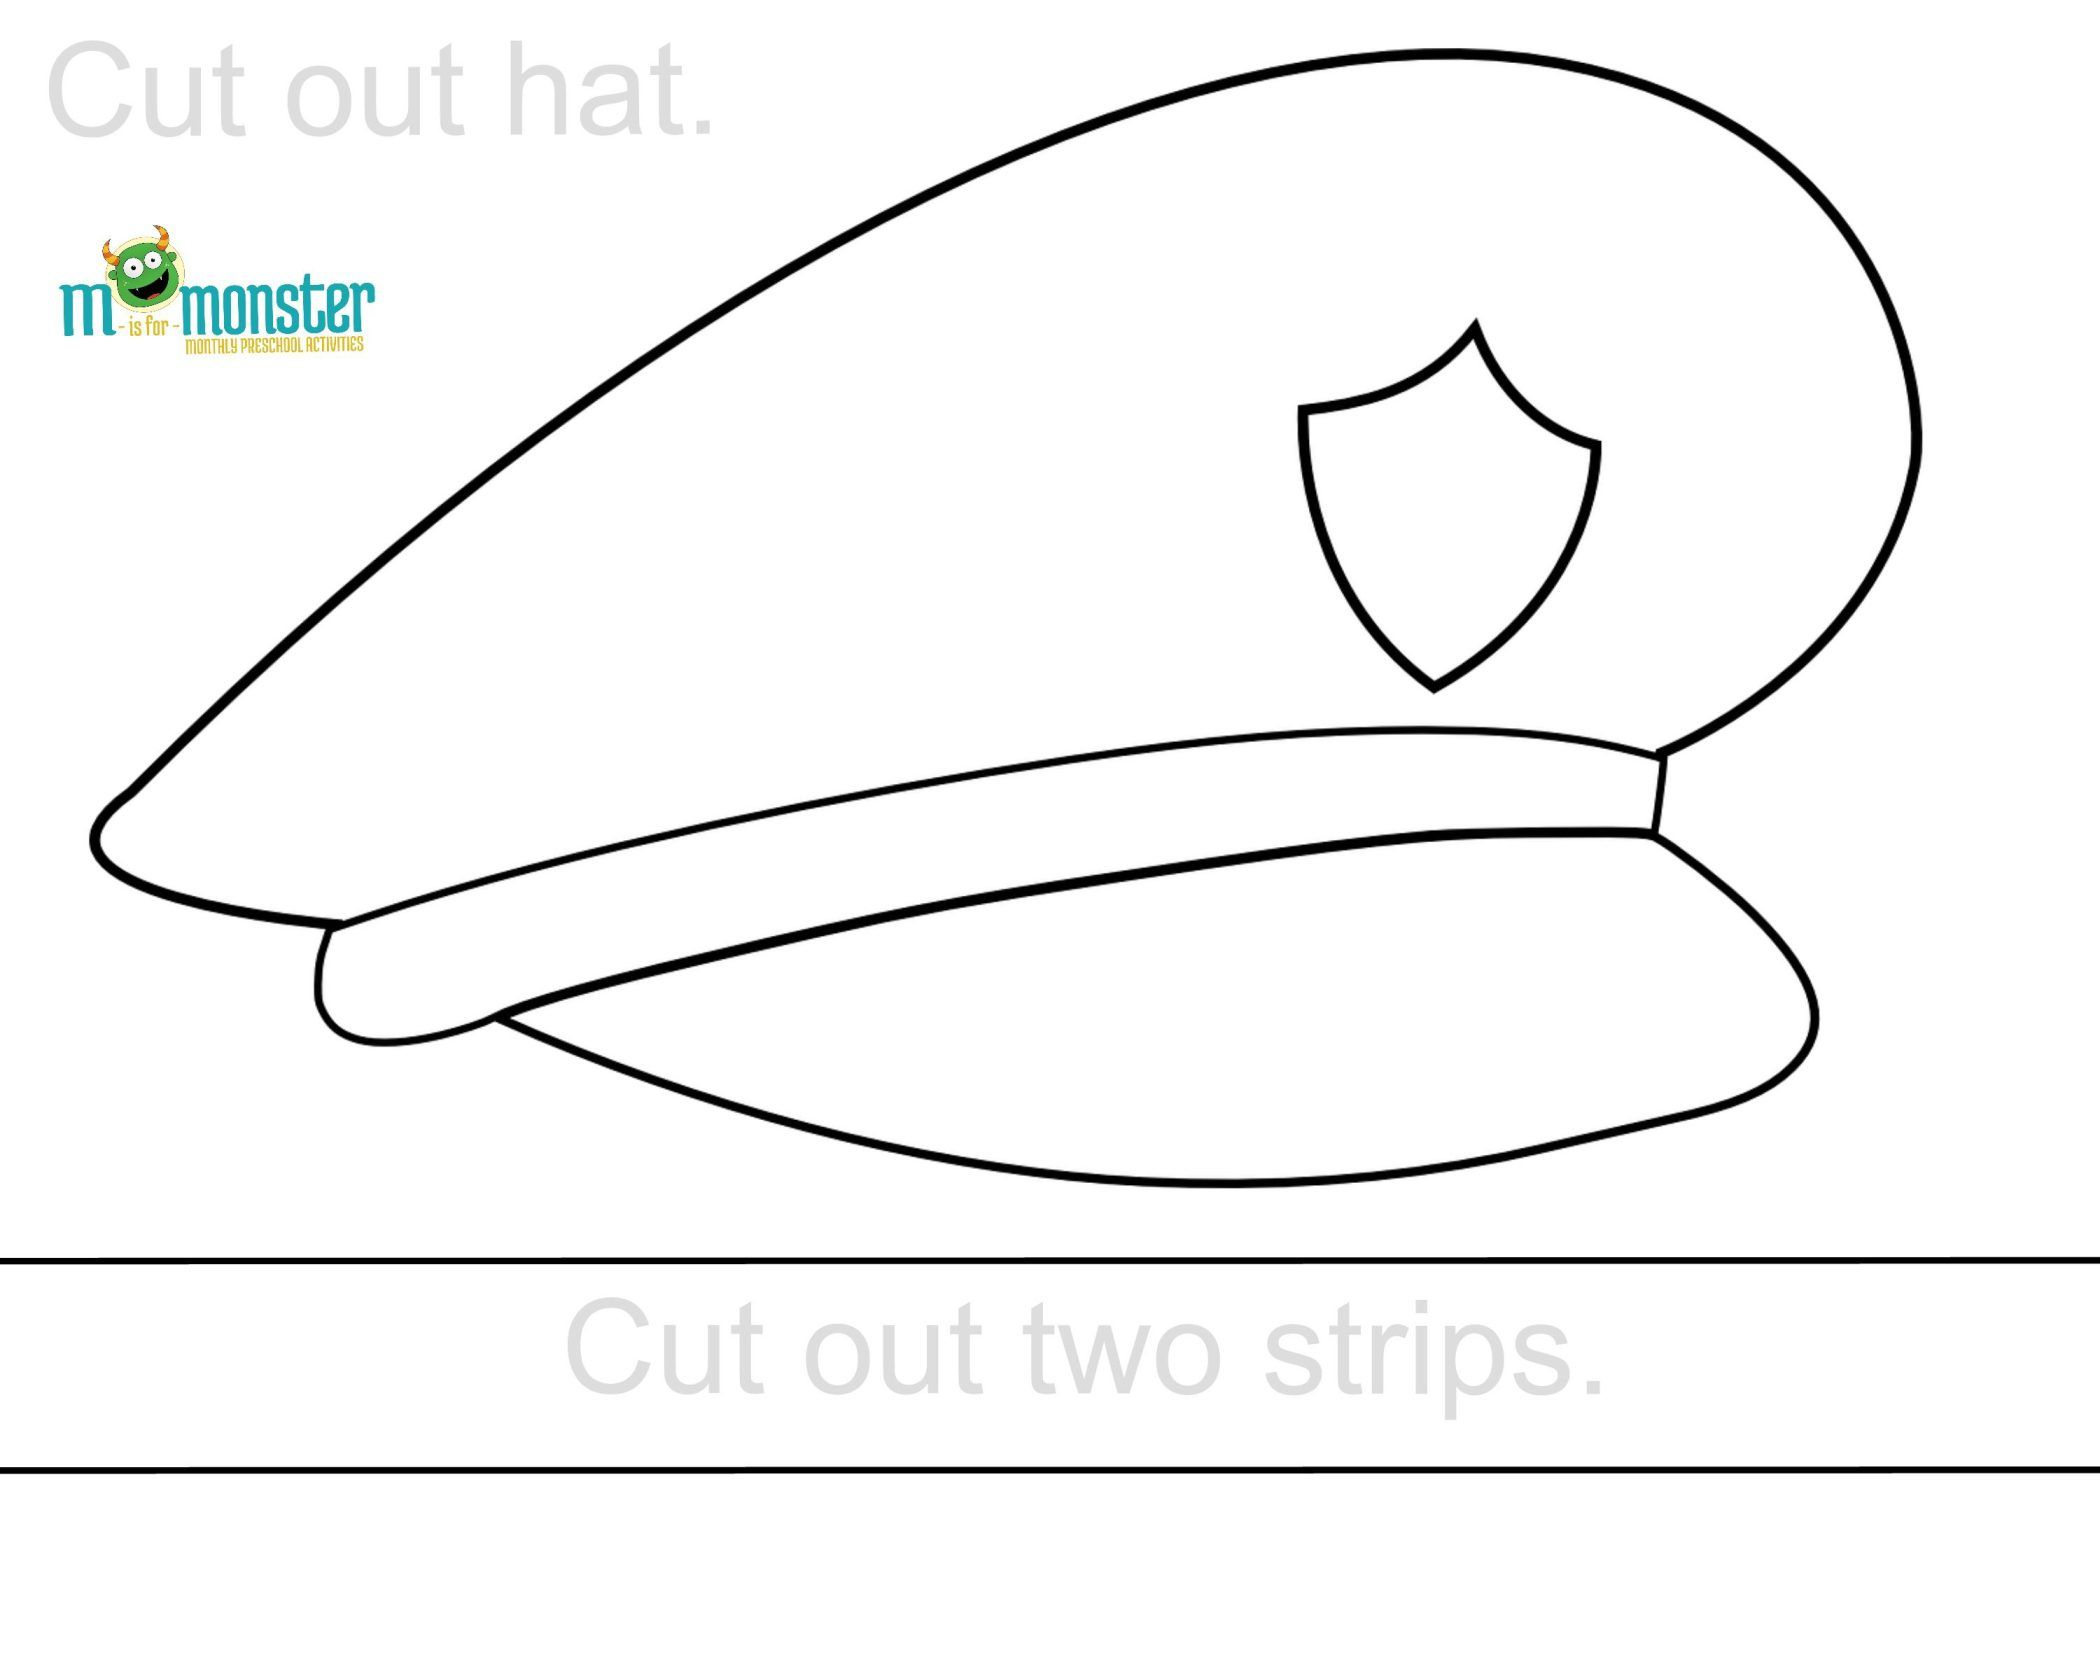 Free Police Hat Printable There Are A Lot Of Ways We Can